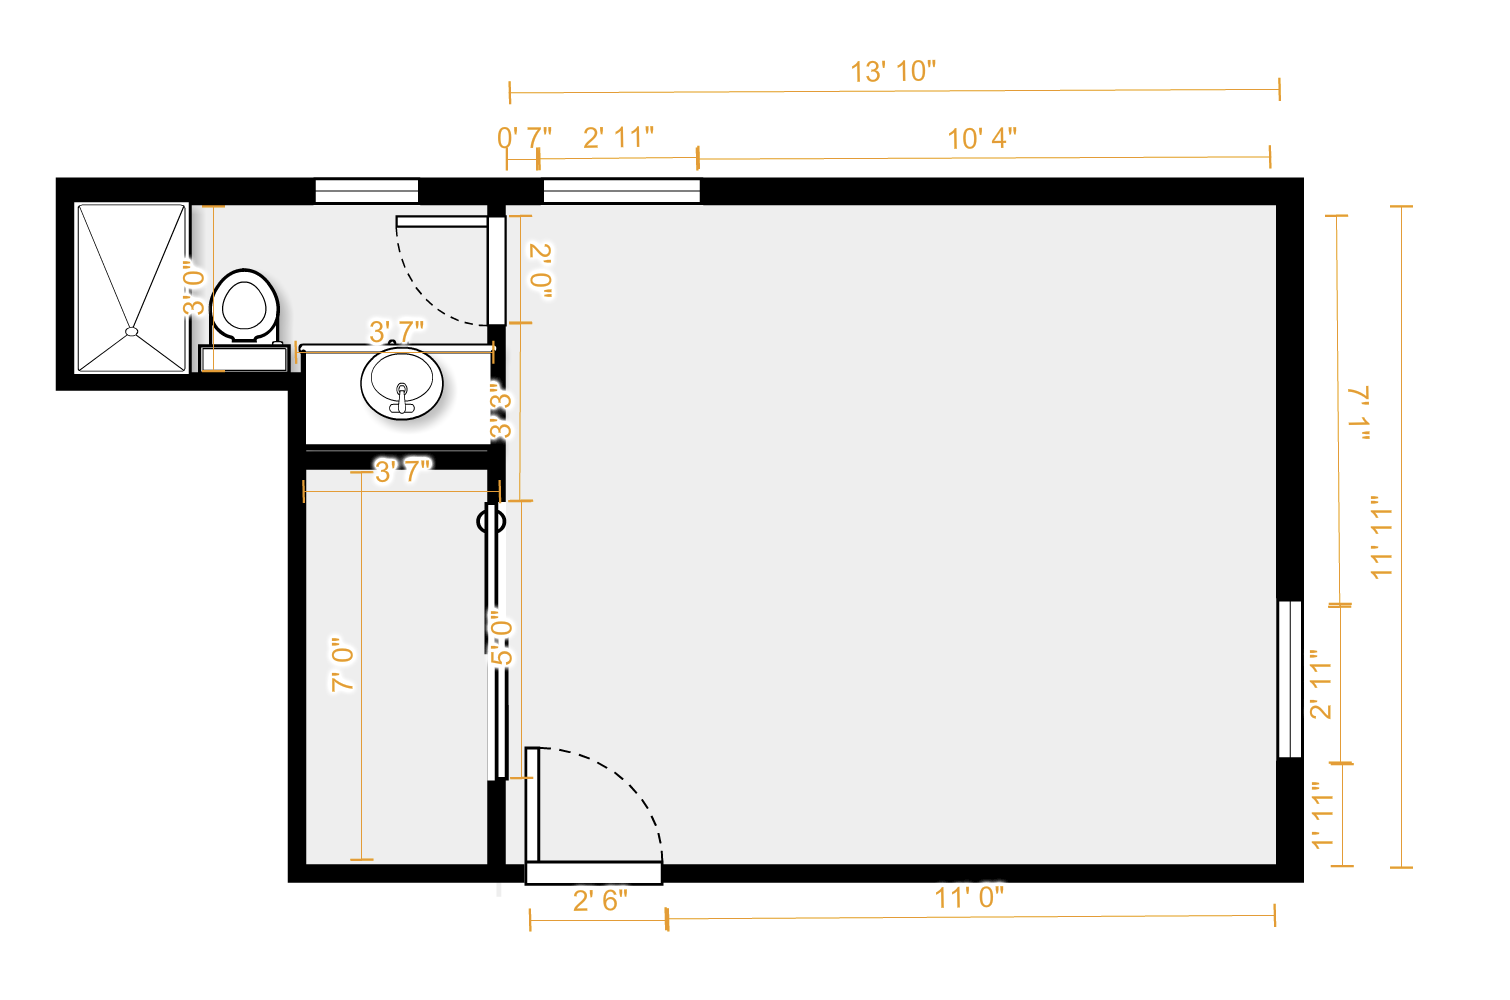 FLOOR PLAN CREATED IN ICOVIA